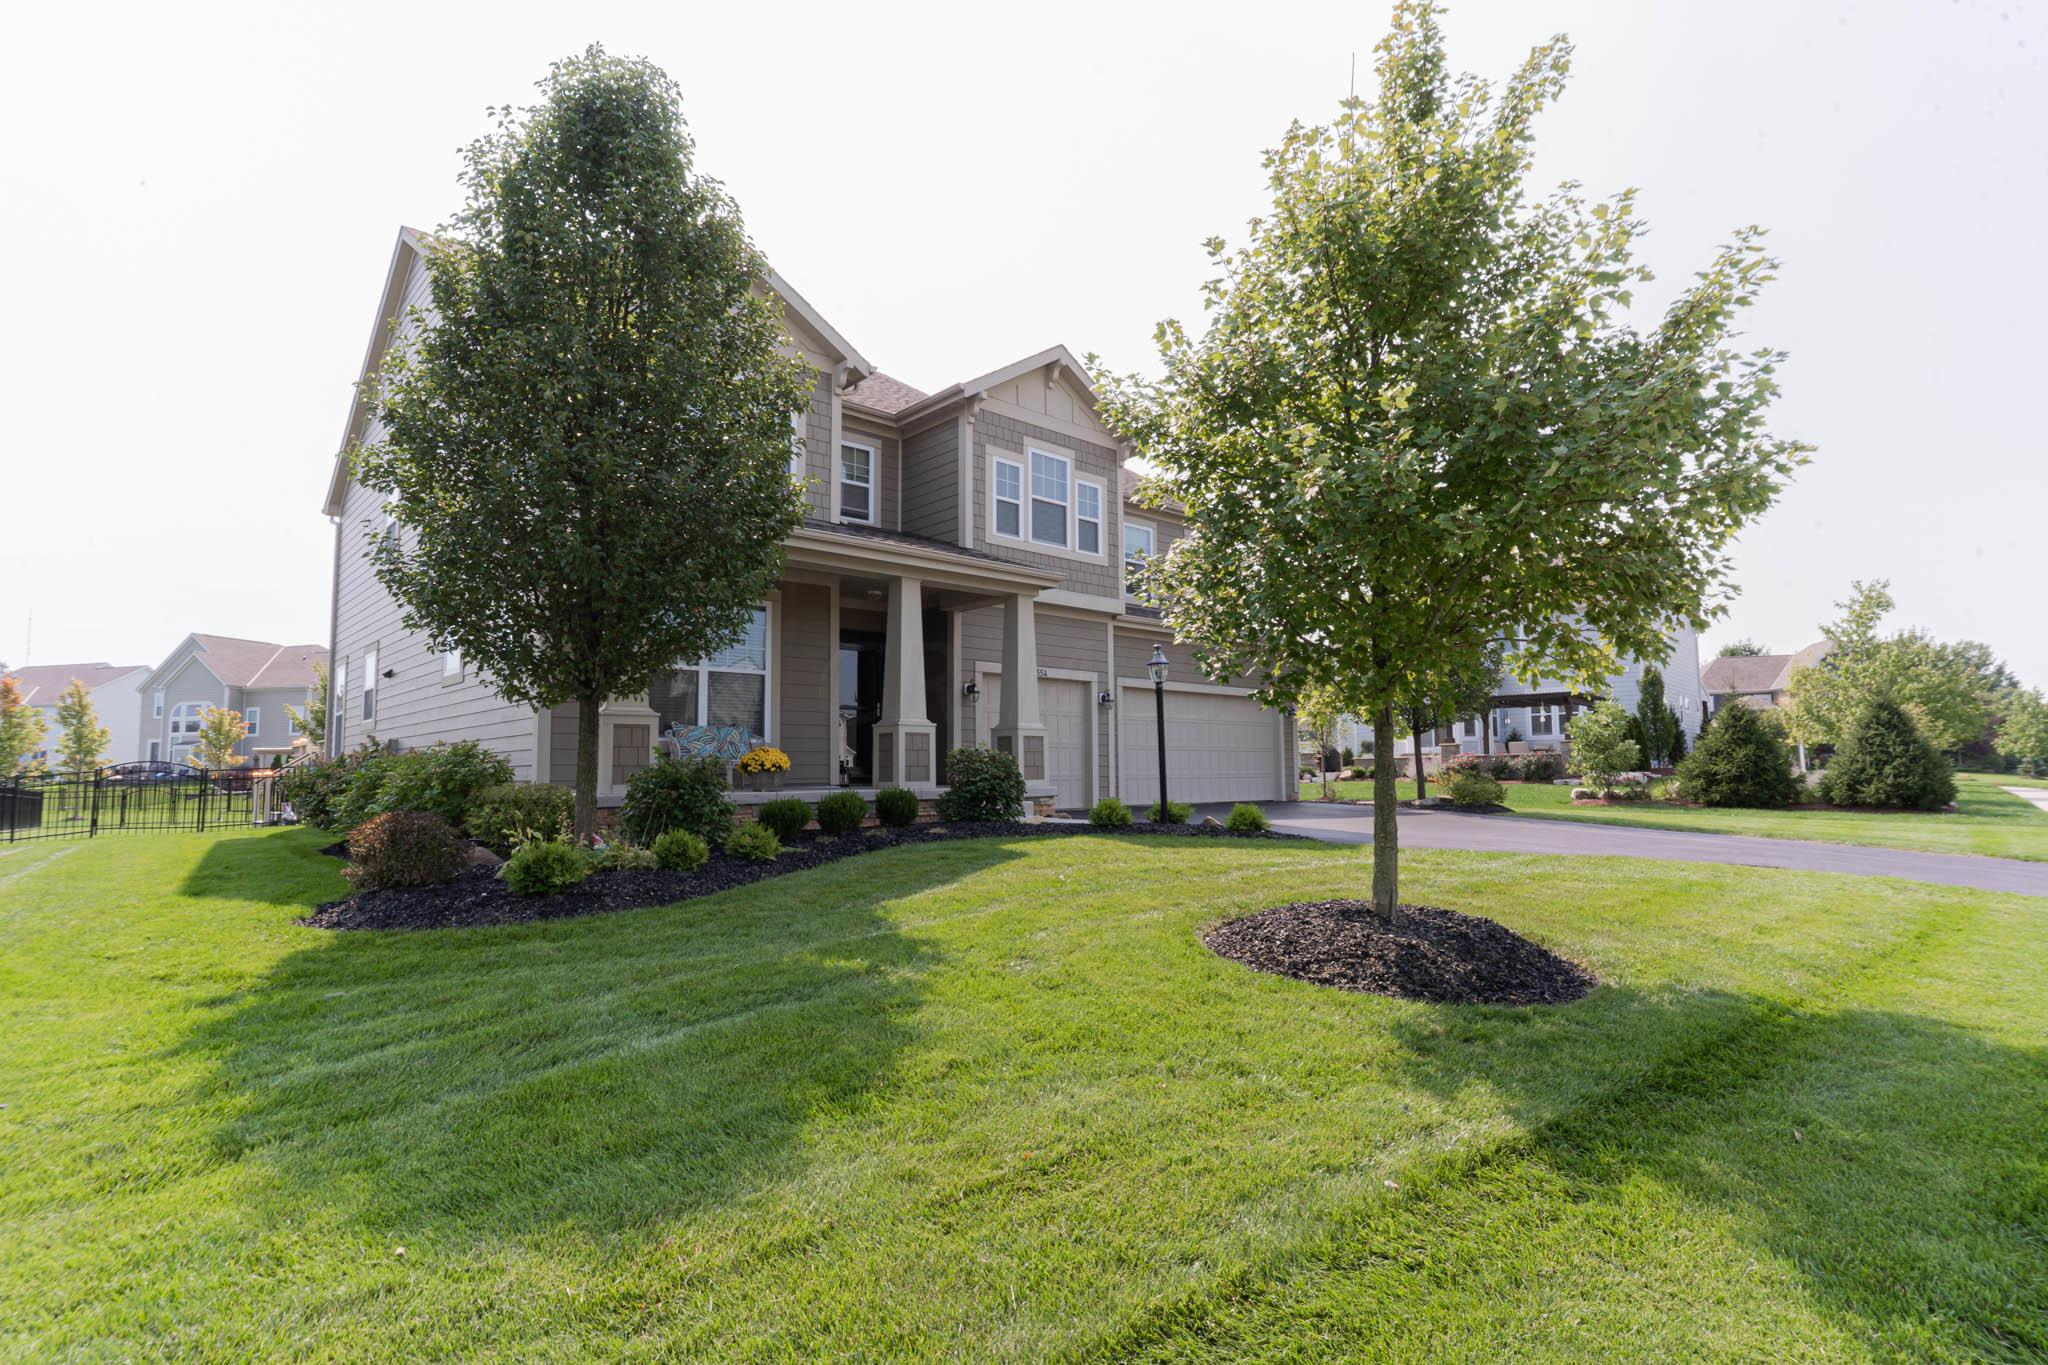 4554 Sanctuary Drive, Westerville, Ohio 43082, 4 Bedrooms Bedrooms, ,4 BathroomsBathrooms,Residential,For Sale,Sanctuary,220032131